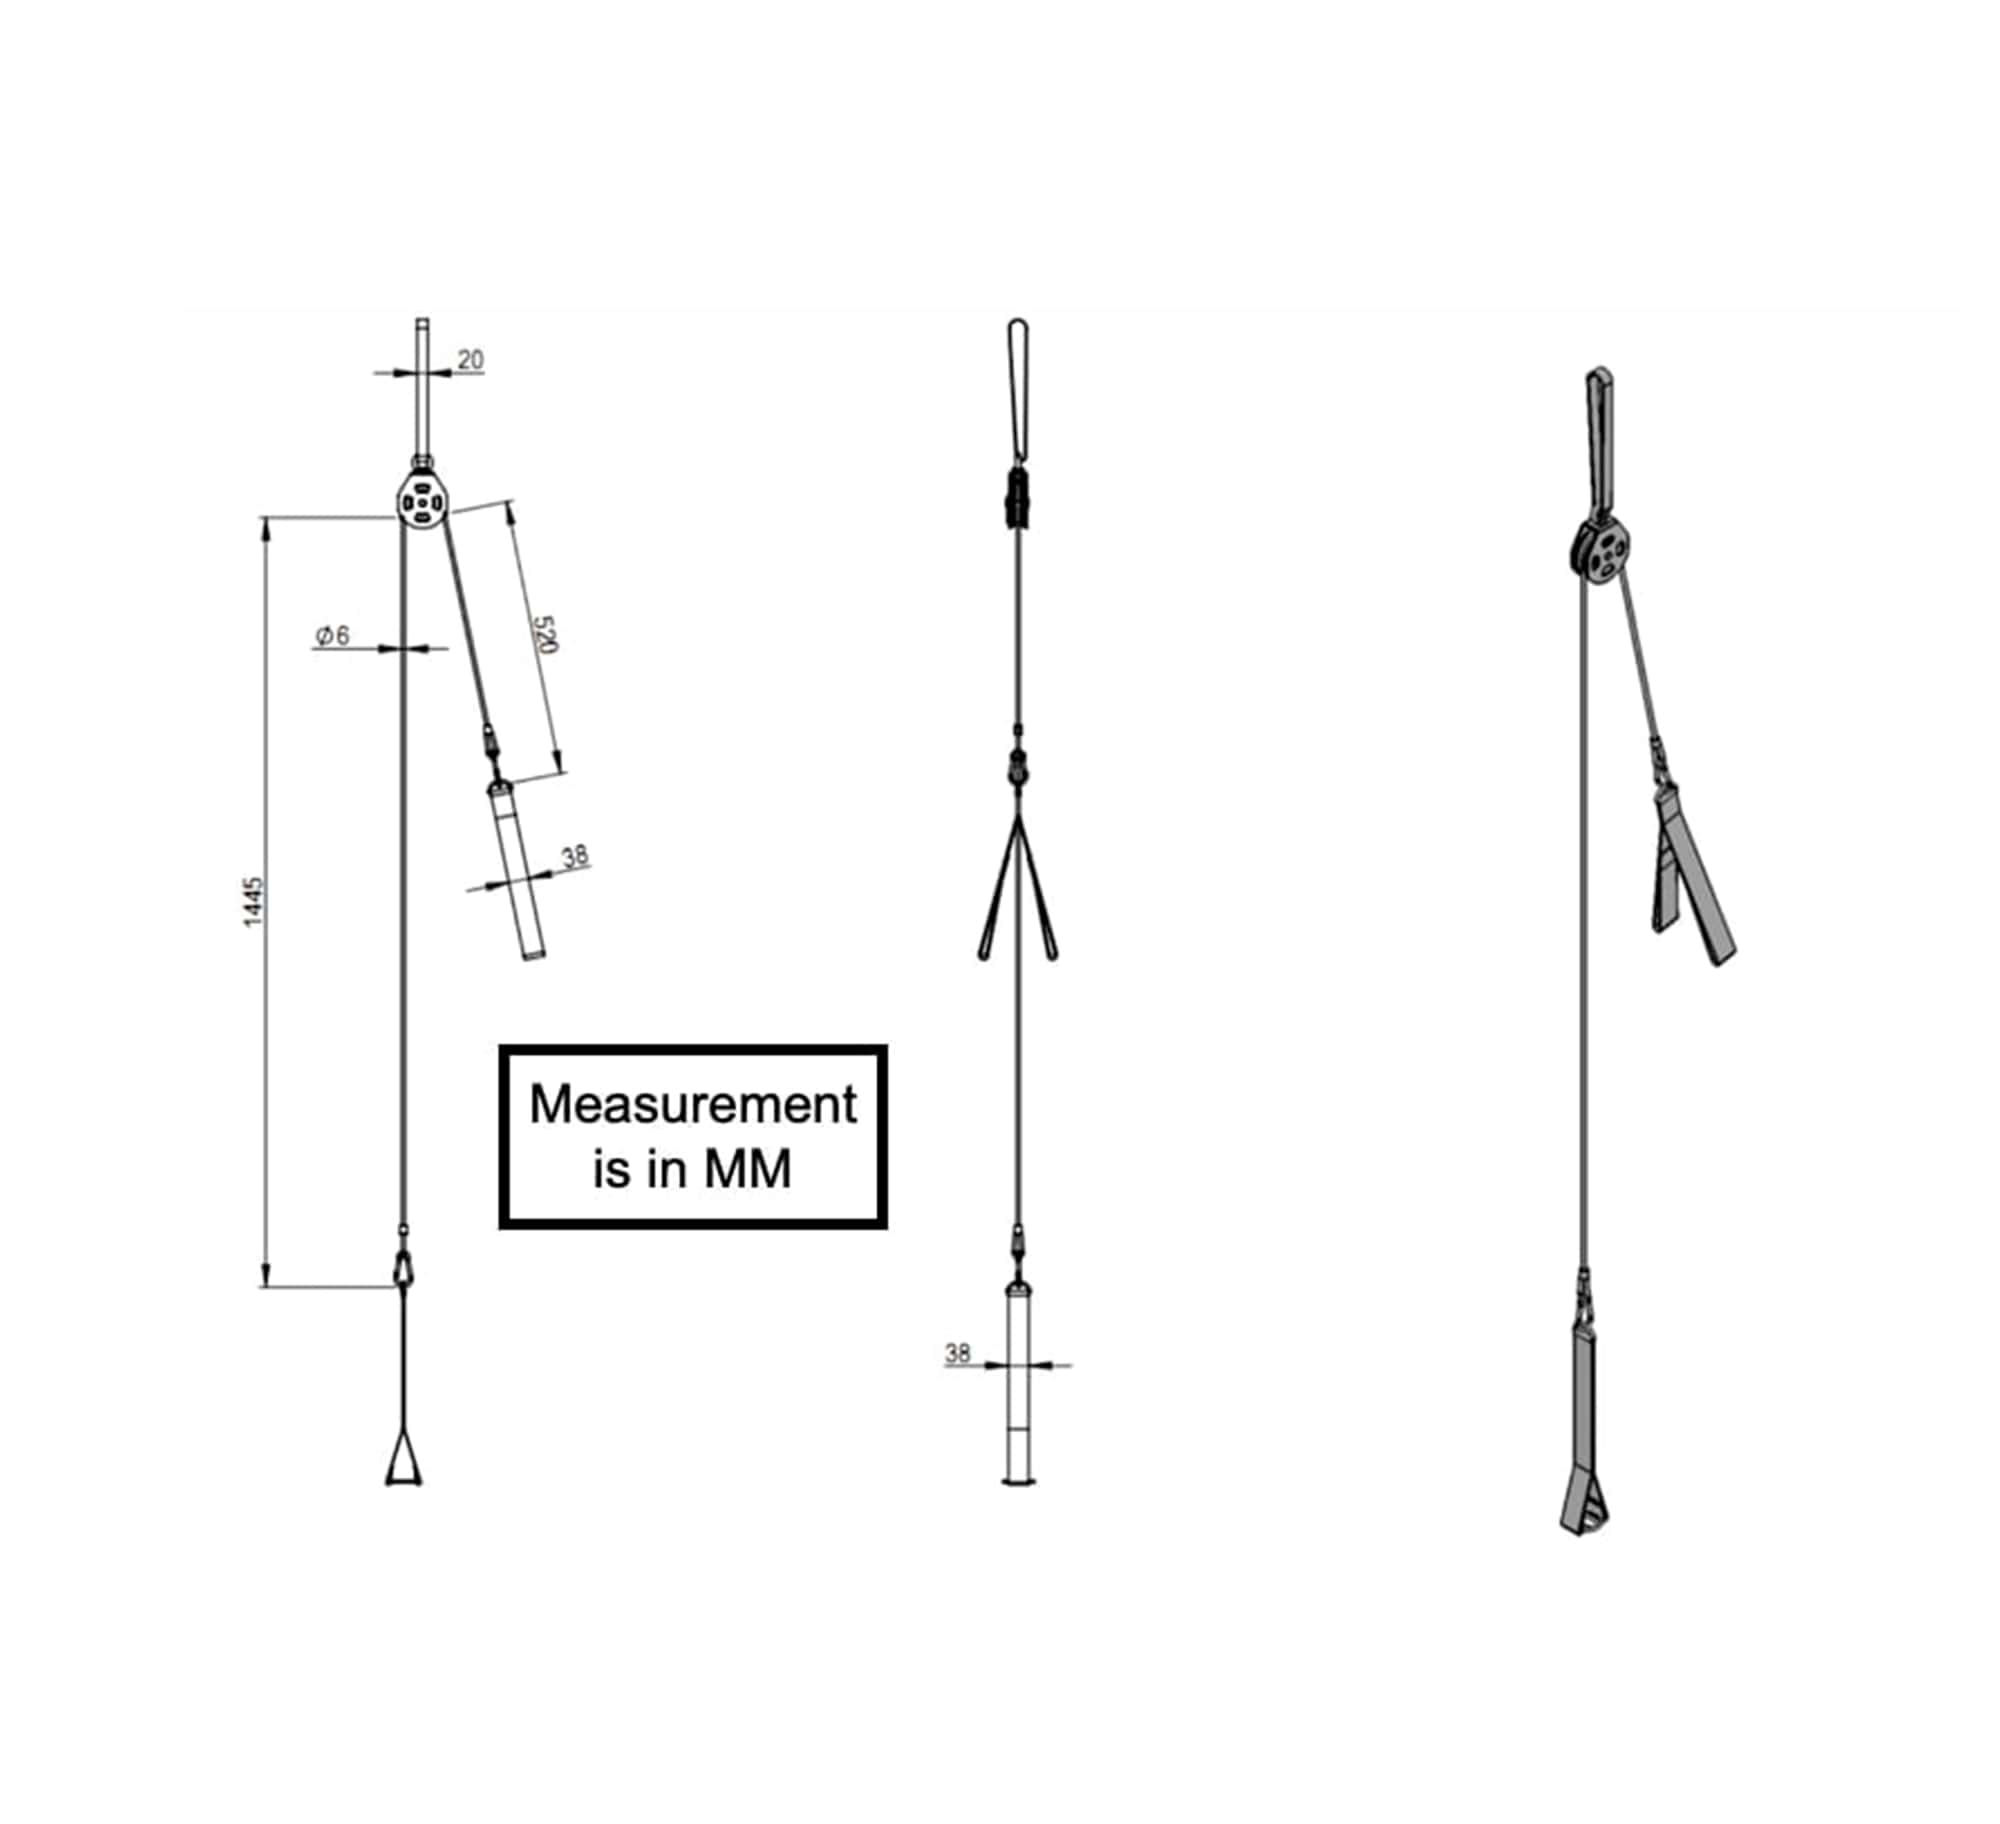 bos-pulley-attachment-02-min